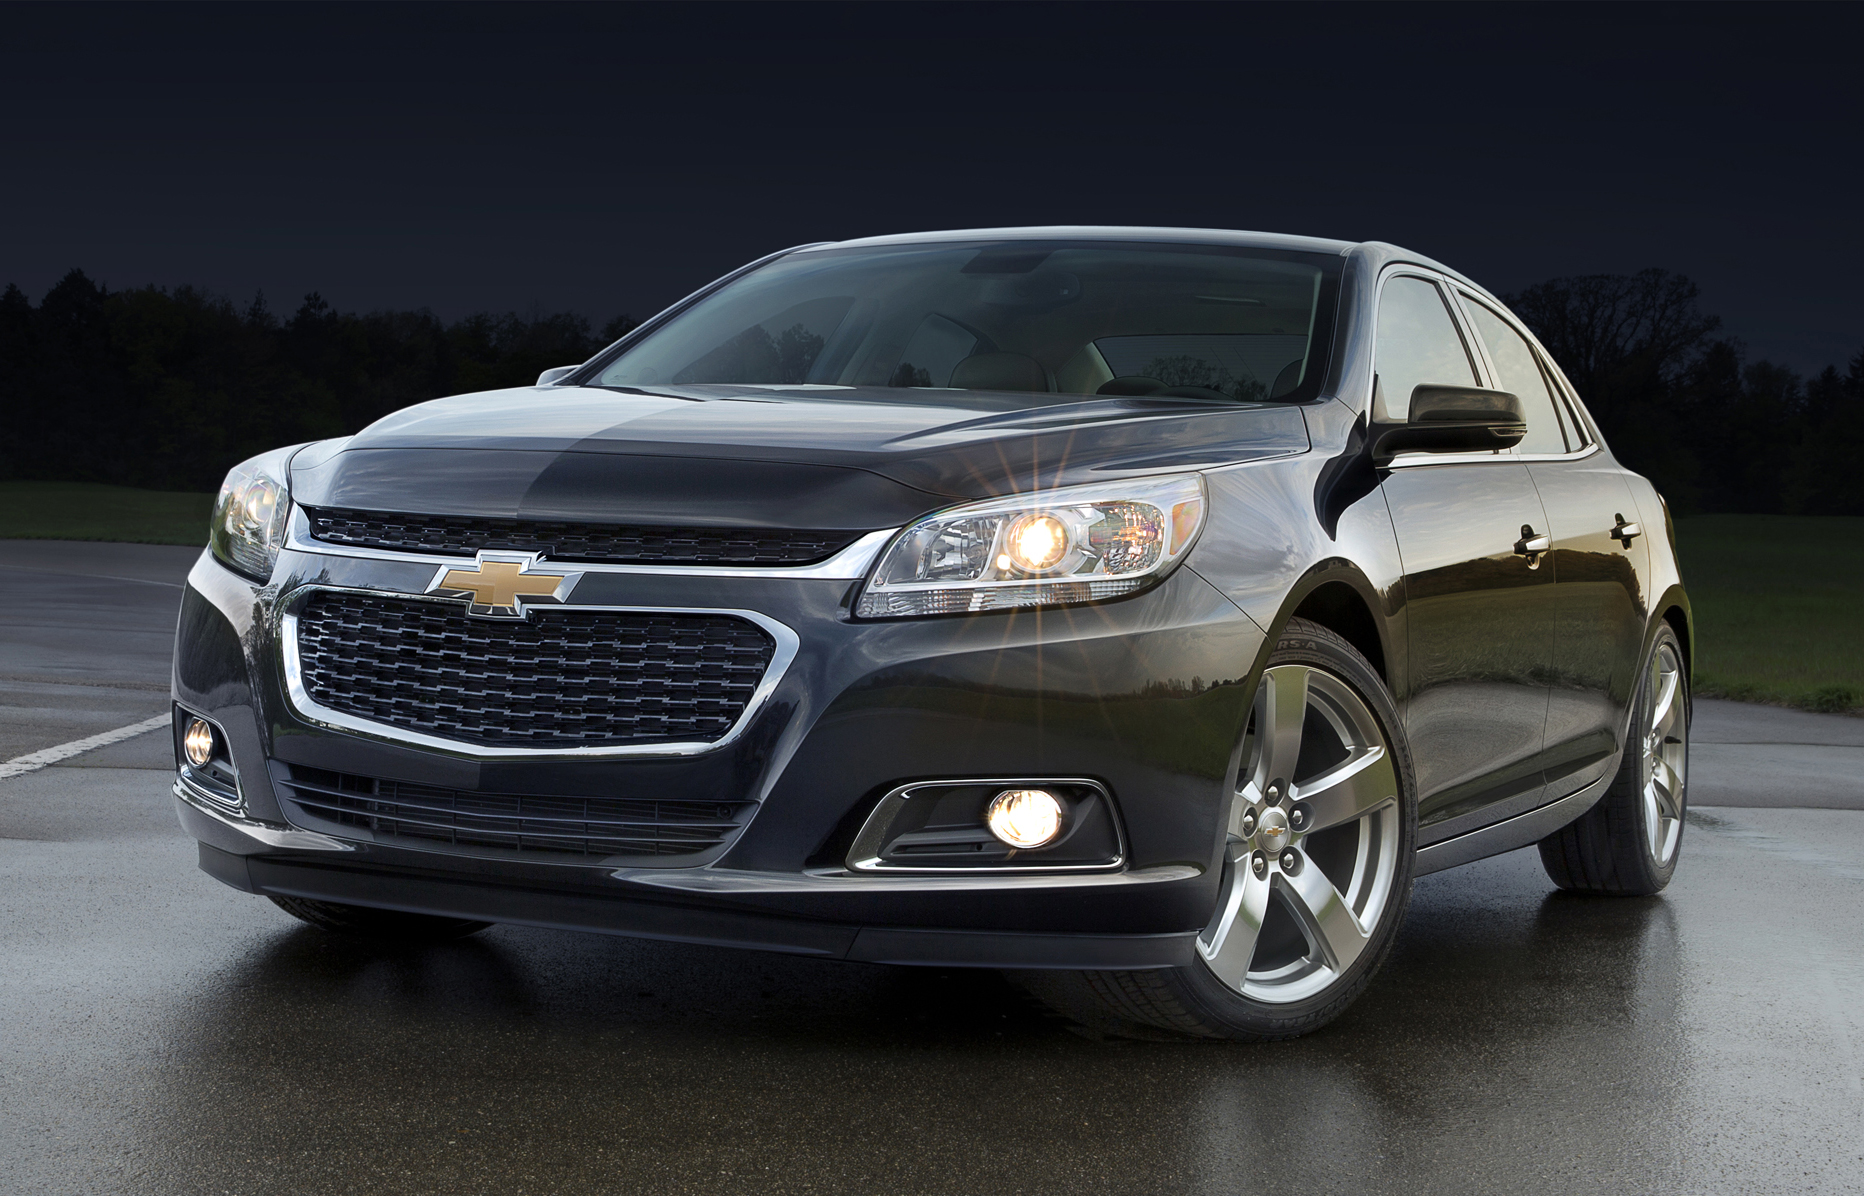 2014 Chevy Malibu Burlington NJ